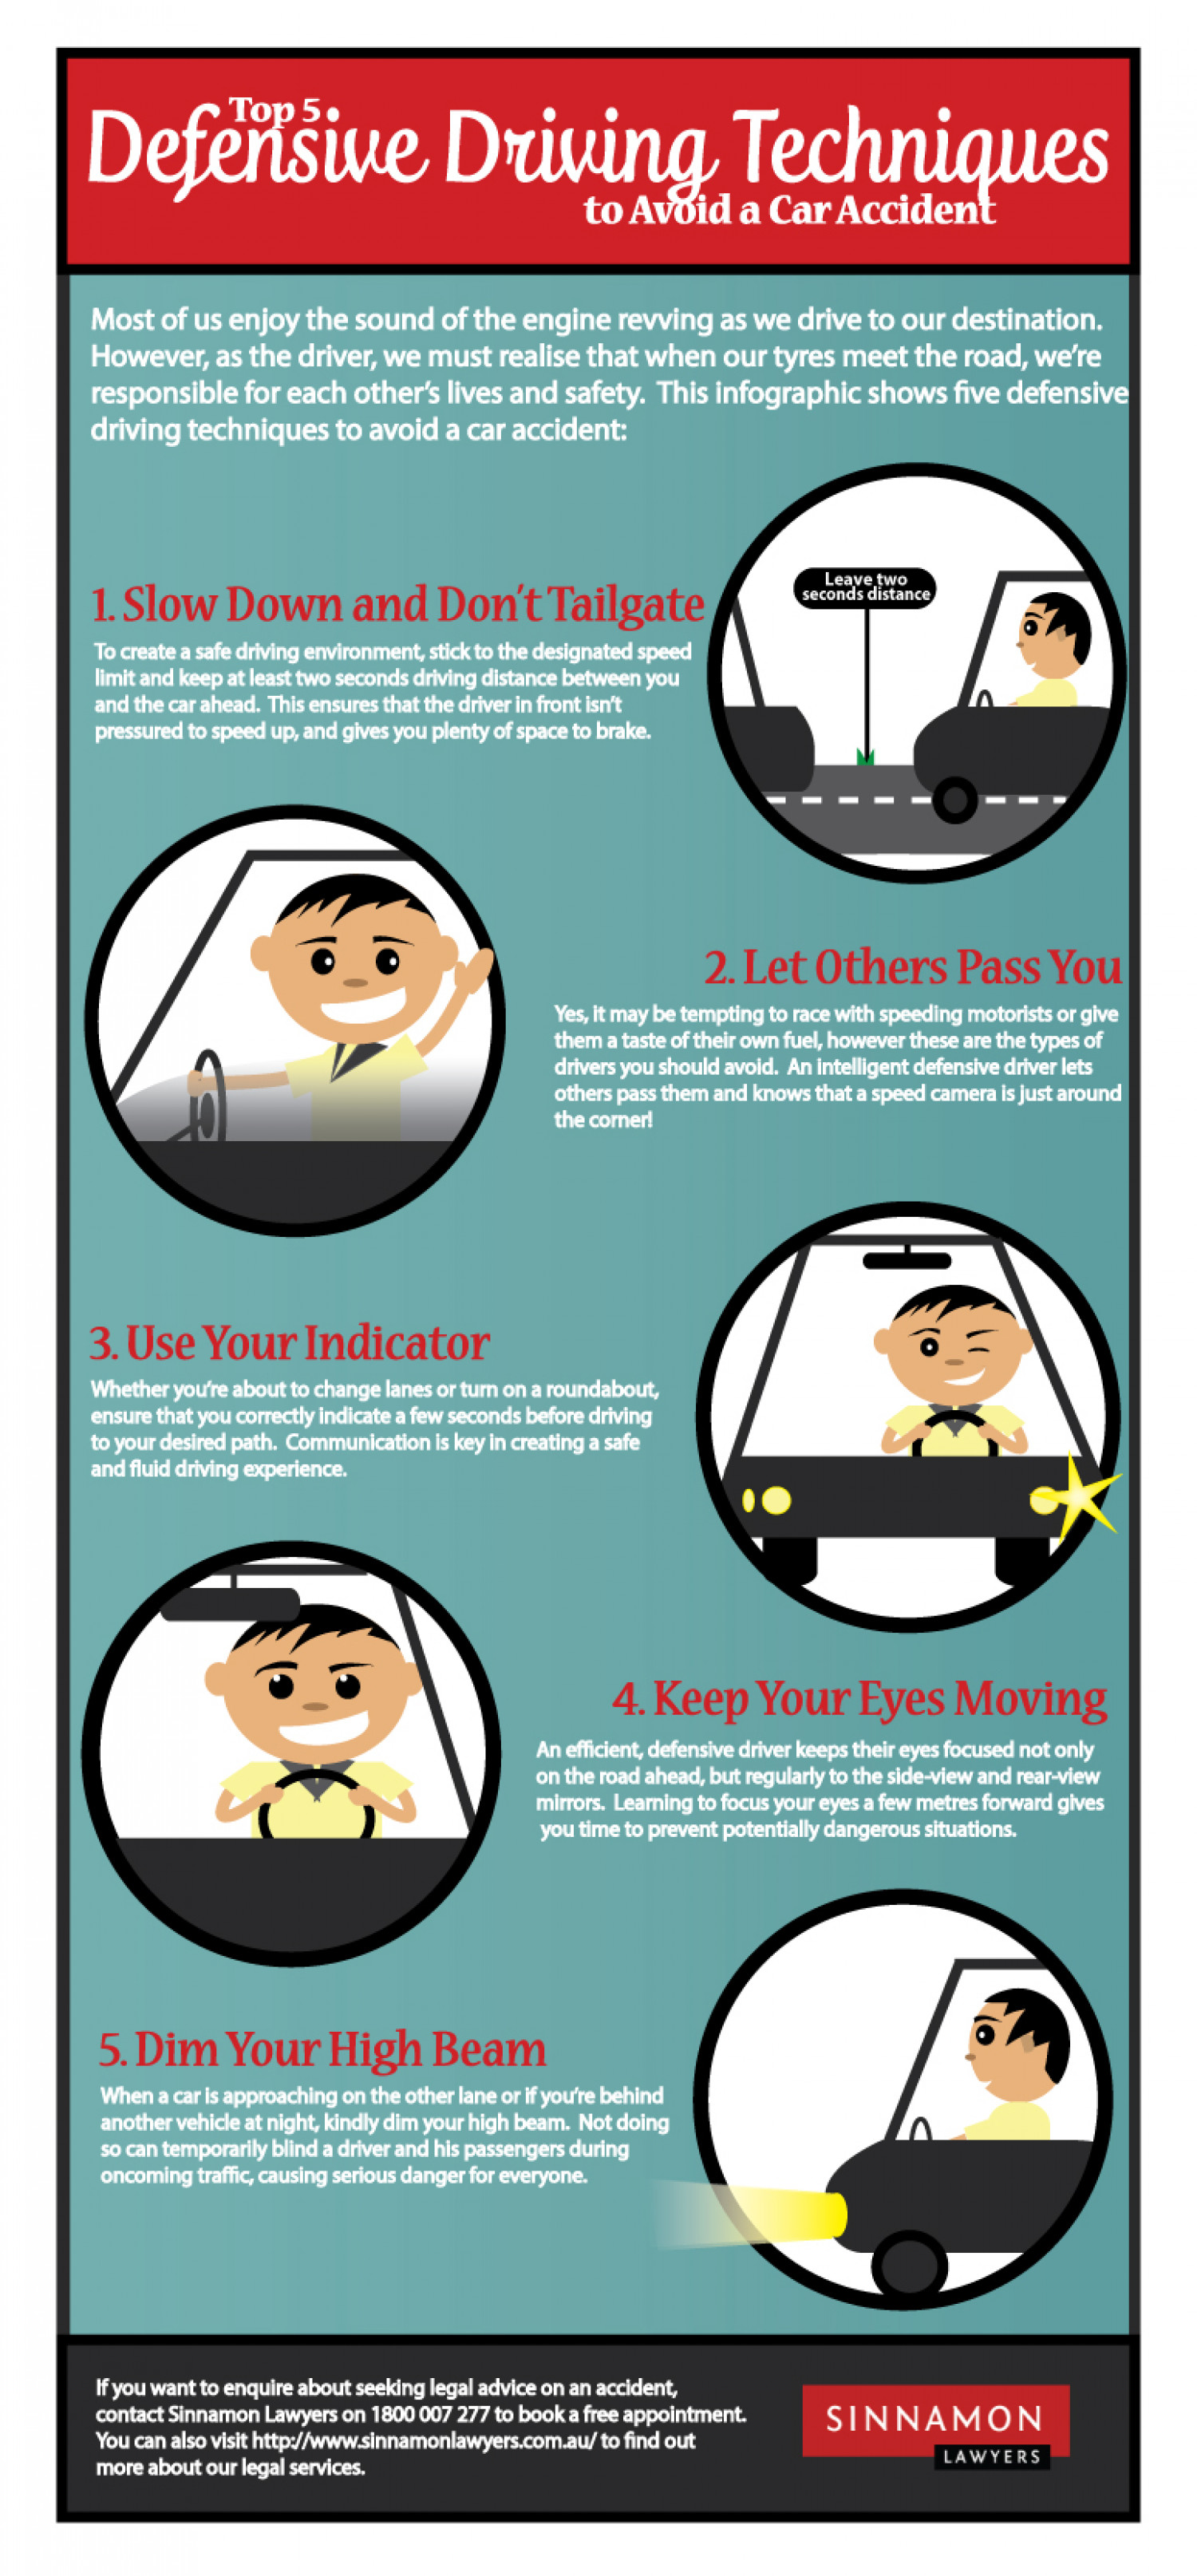 Top 5 Defensive Driving Techniques to Avoid a Car Accident ...